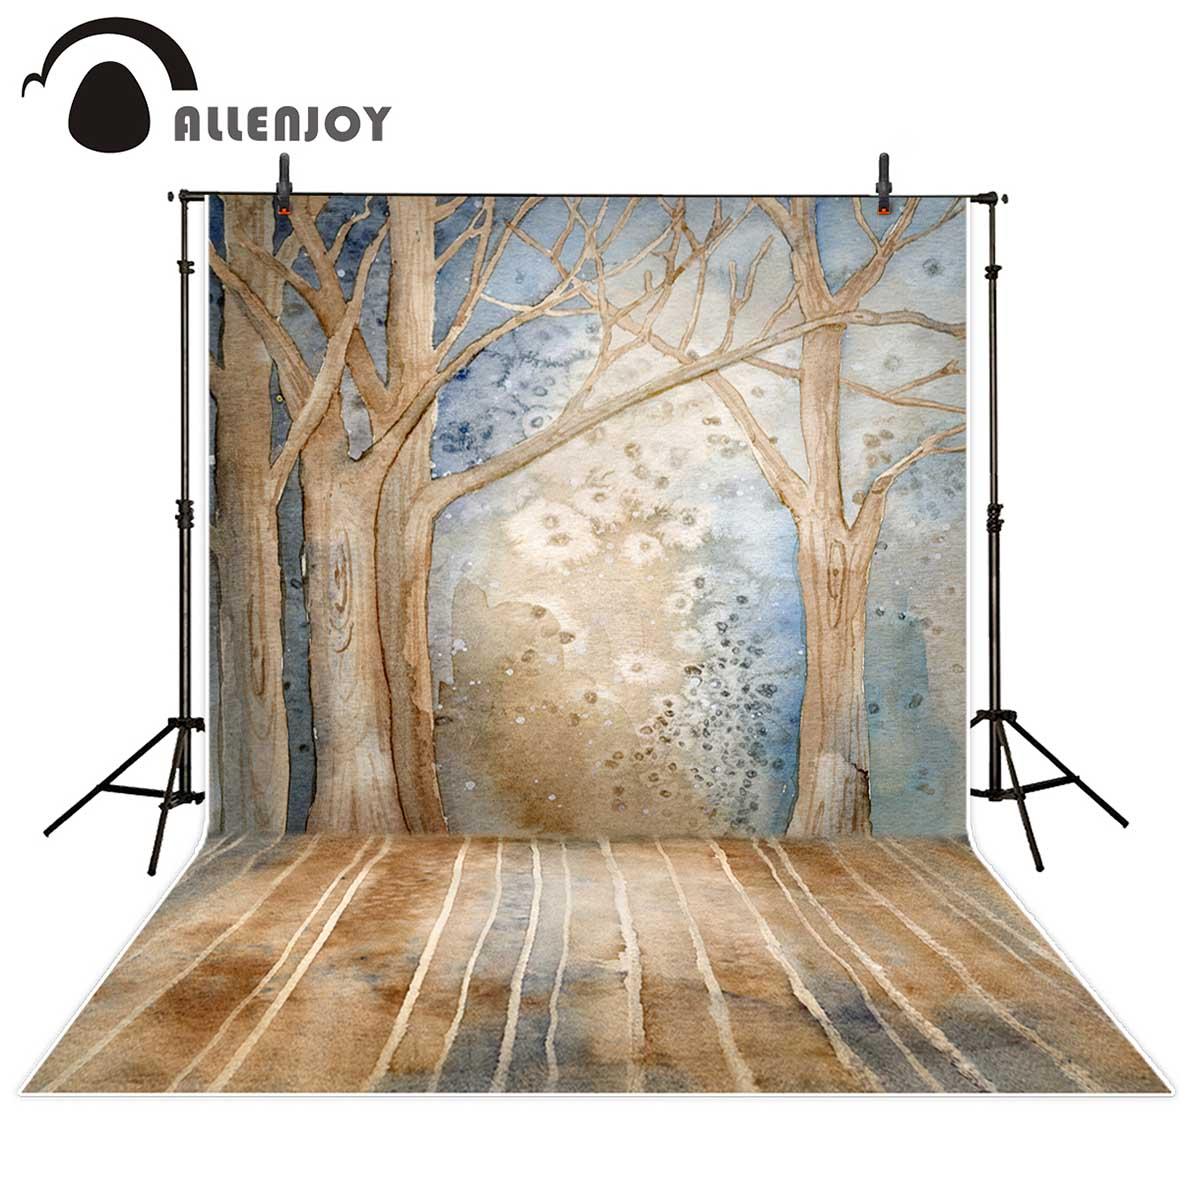 Allenjoy photography background Vintage trees winter snow oil painting style backdrop Photo background studio camera fotografica allenjoy backdrop background wonderland